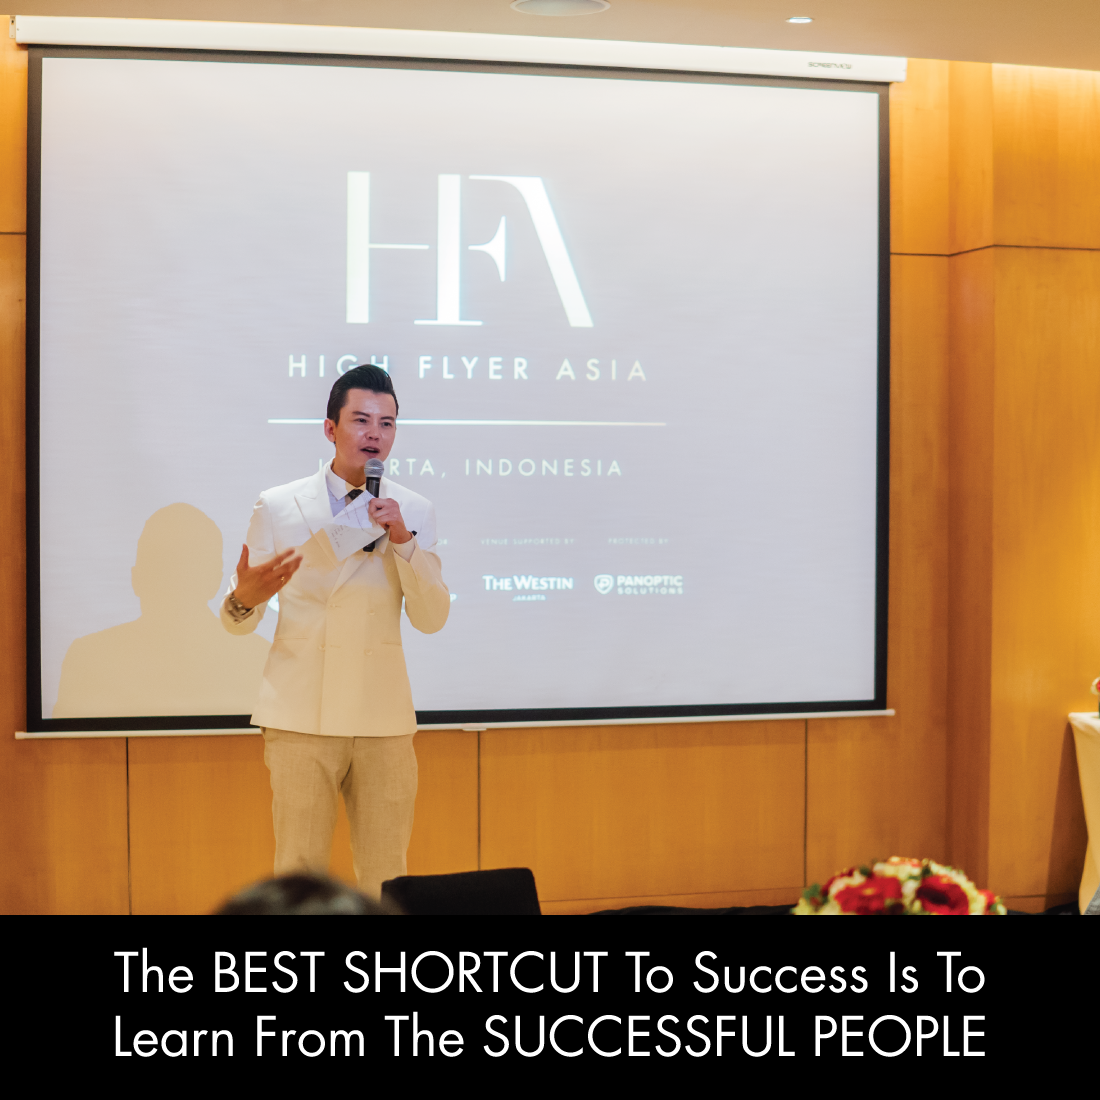 The Best Shortcut To Success is To Learn From The Successful People